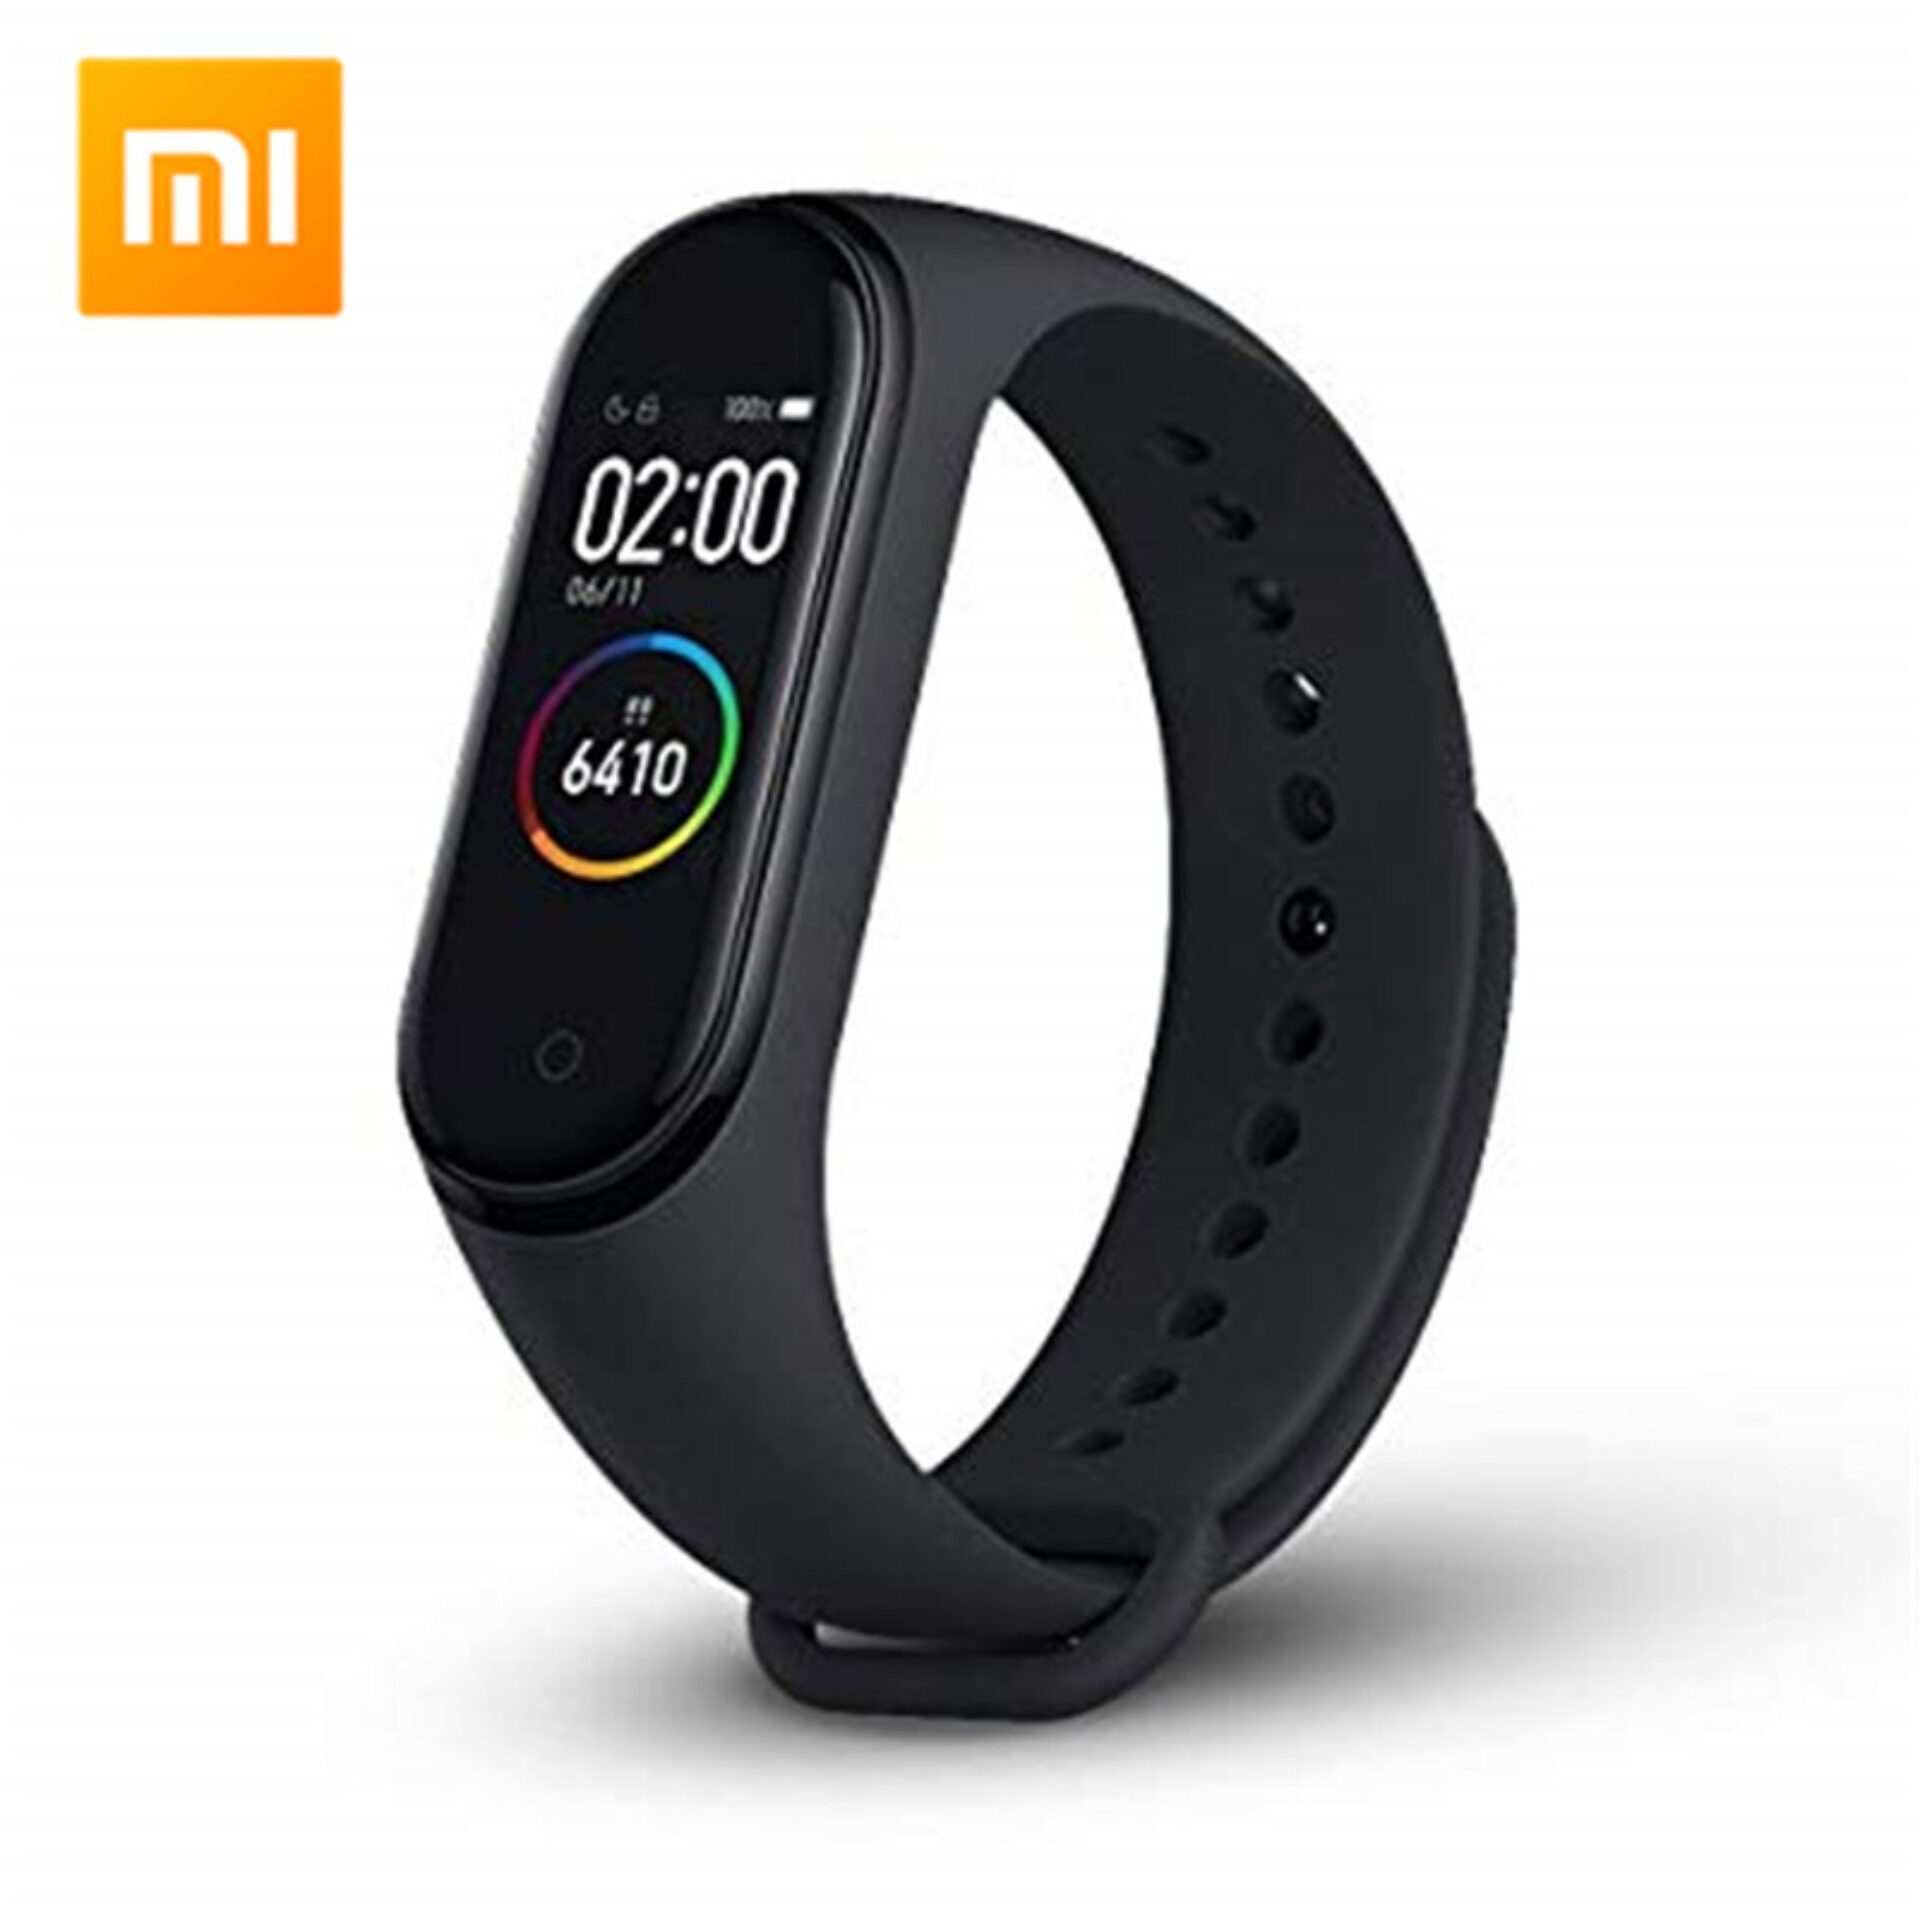 Global Version Xiaomi Mi Band 4 Smart Bracelet Amoled Screen Miband 4 Fitness Traker Bluetooth Sport Waterproof Smart Band In Stock.